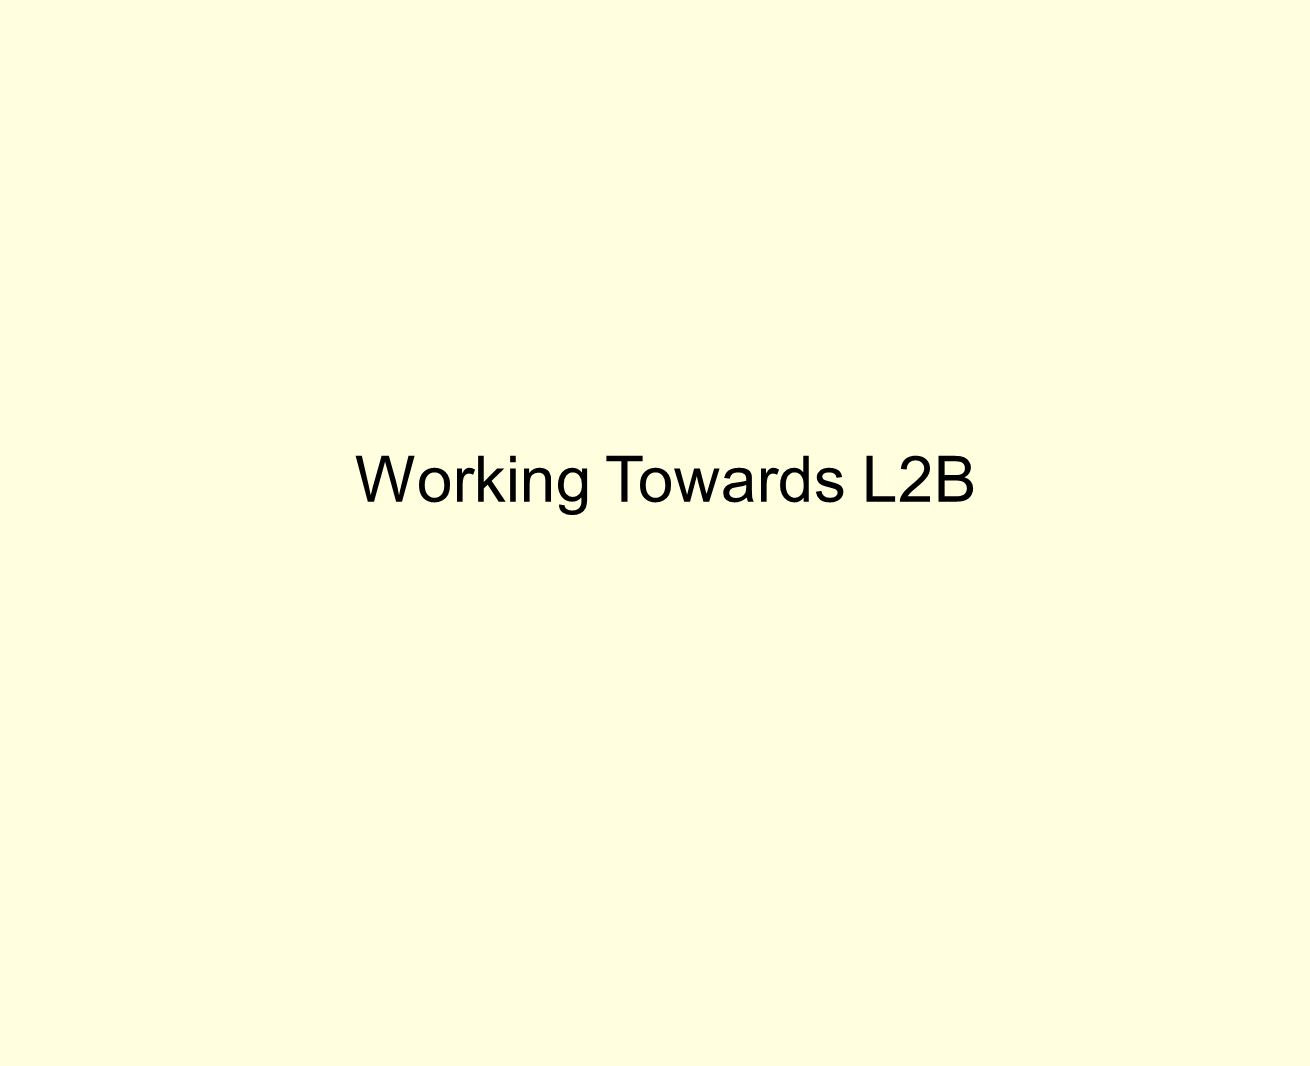 Working Towards L2B